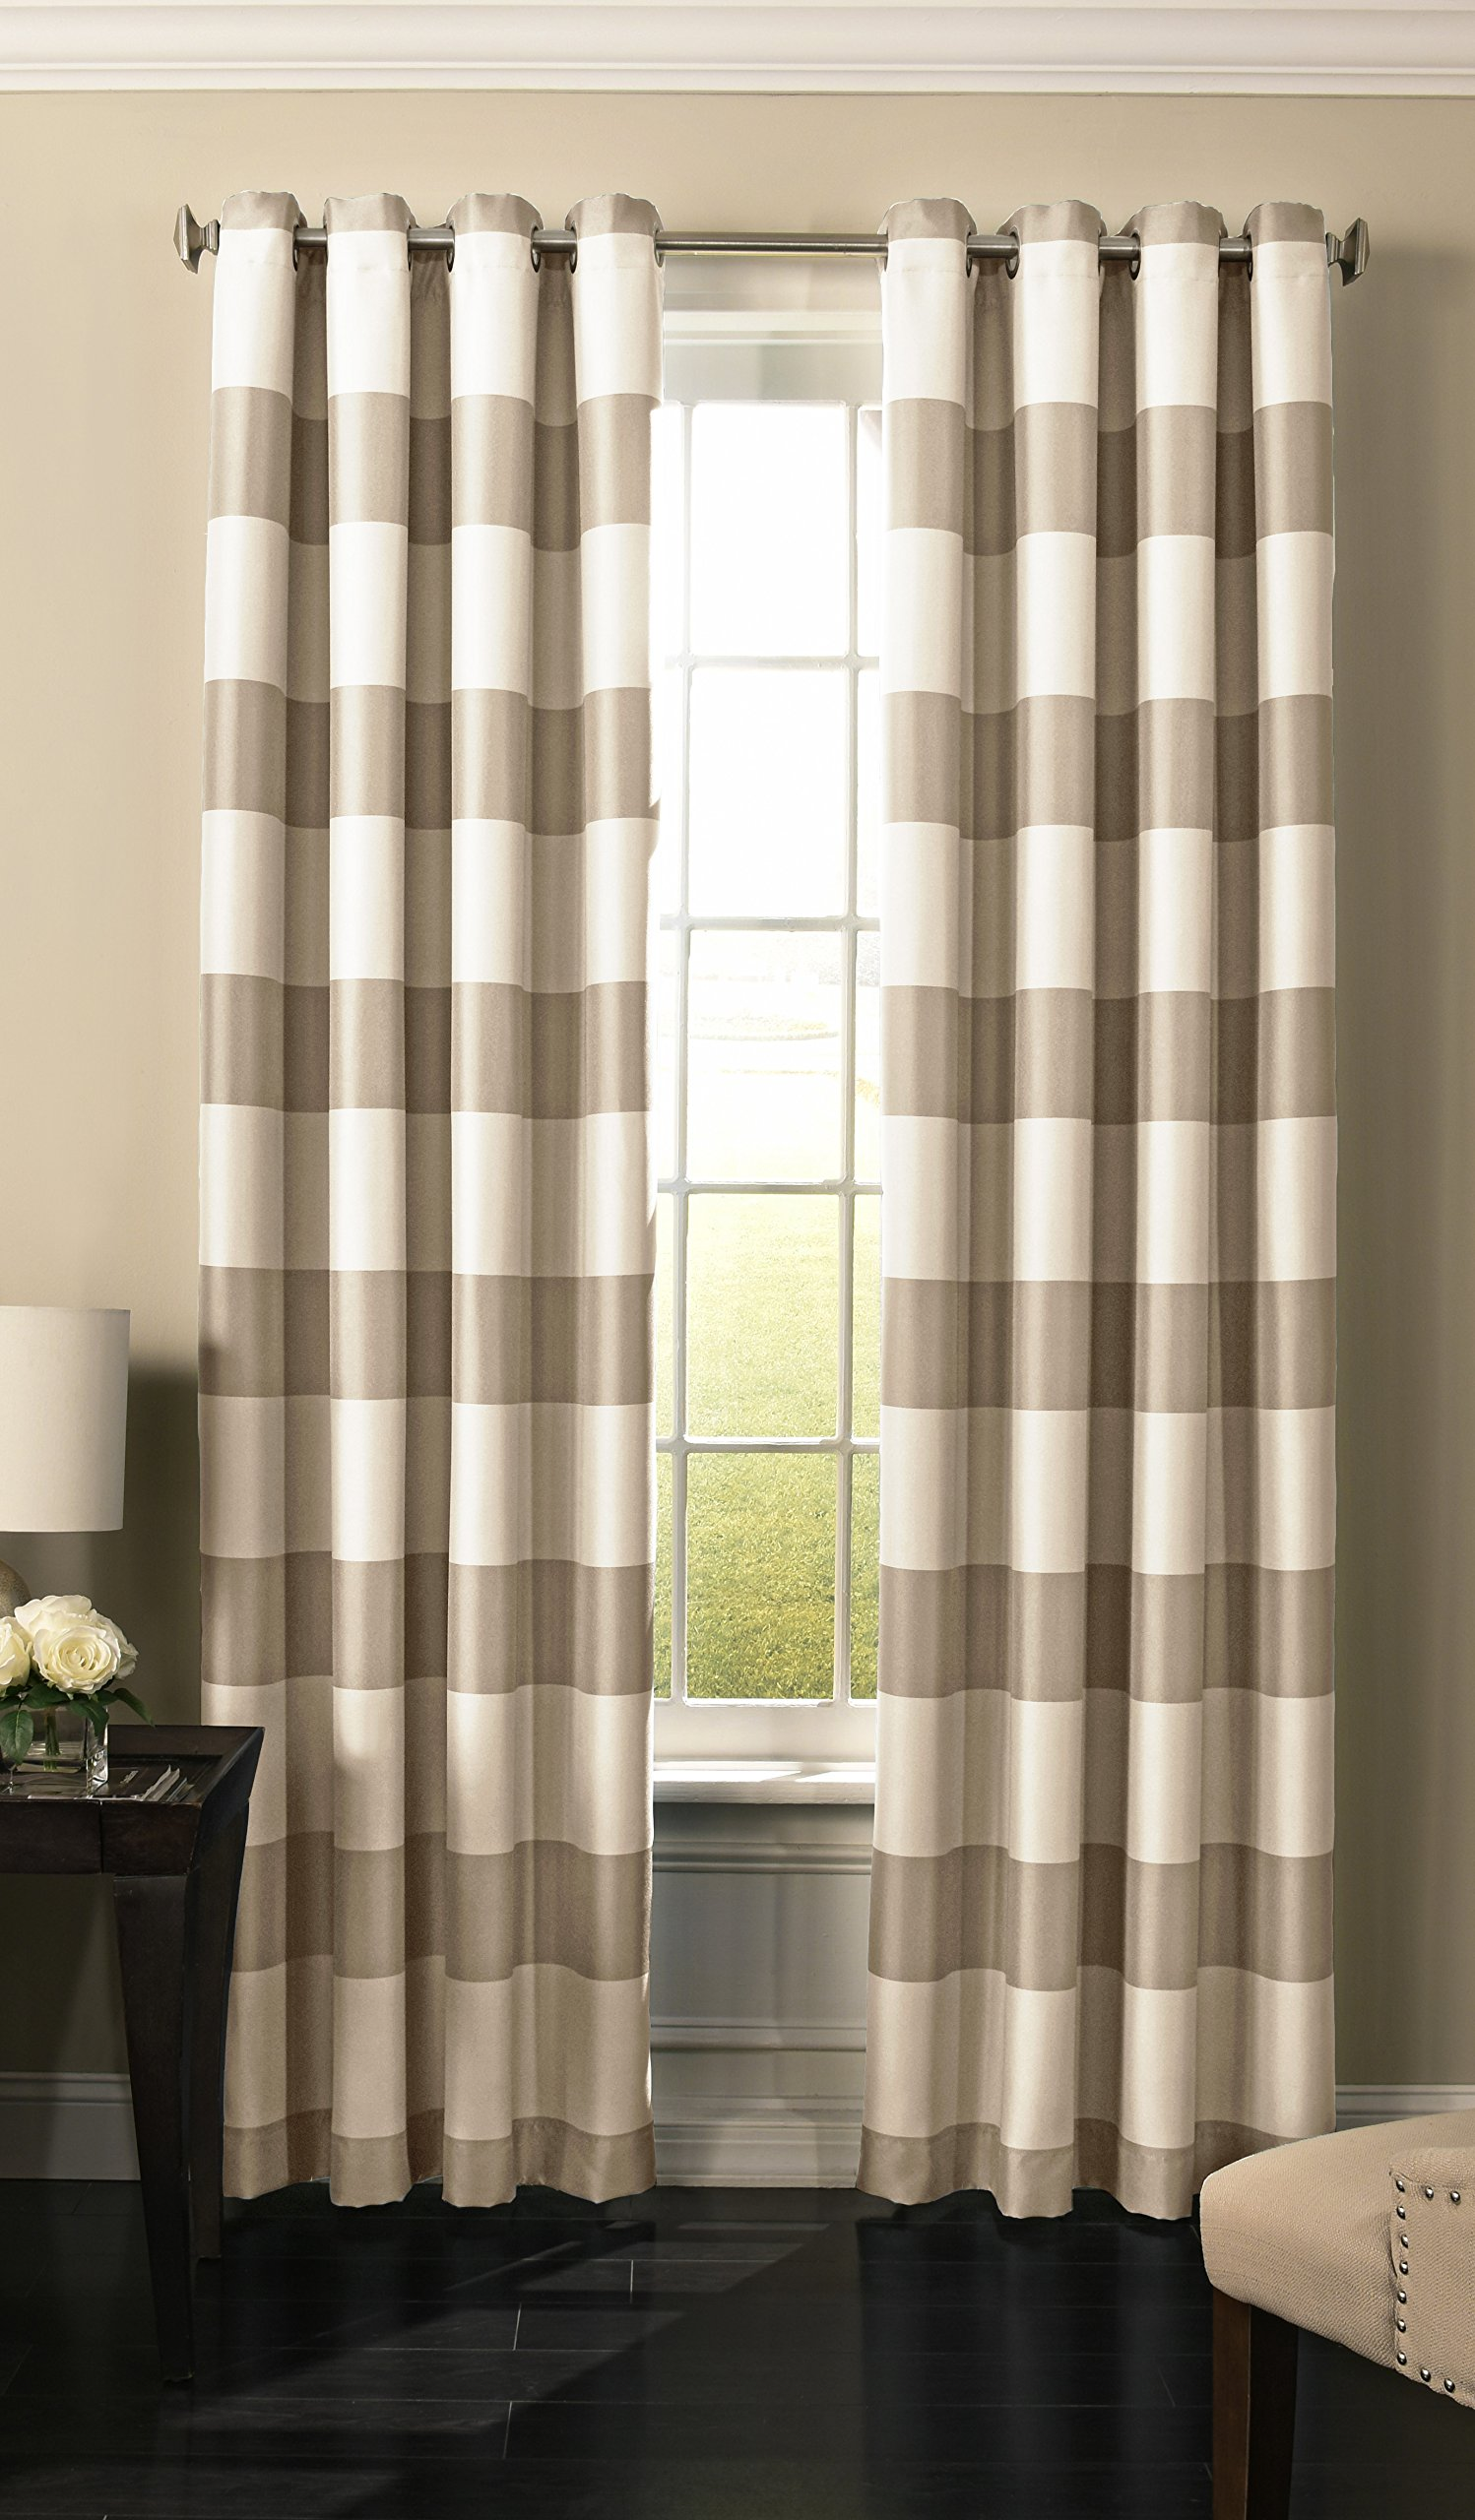 """BEAUTYREST 52"""" x 95"""" Insulated Darkening Single Panel Grommet Top Window Treatment Living Room, Natural - 1.65 inch brushed nickel grommets are recommended with up to a 1 inch rod 52 inches wide with extended lengths of 63, 84, 95 and 108 inches Sold as a single, lined panel - living-room-soft-furnishings, living-room, draperies-curtains-shades - 81spGzDejXL -"""